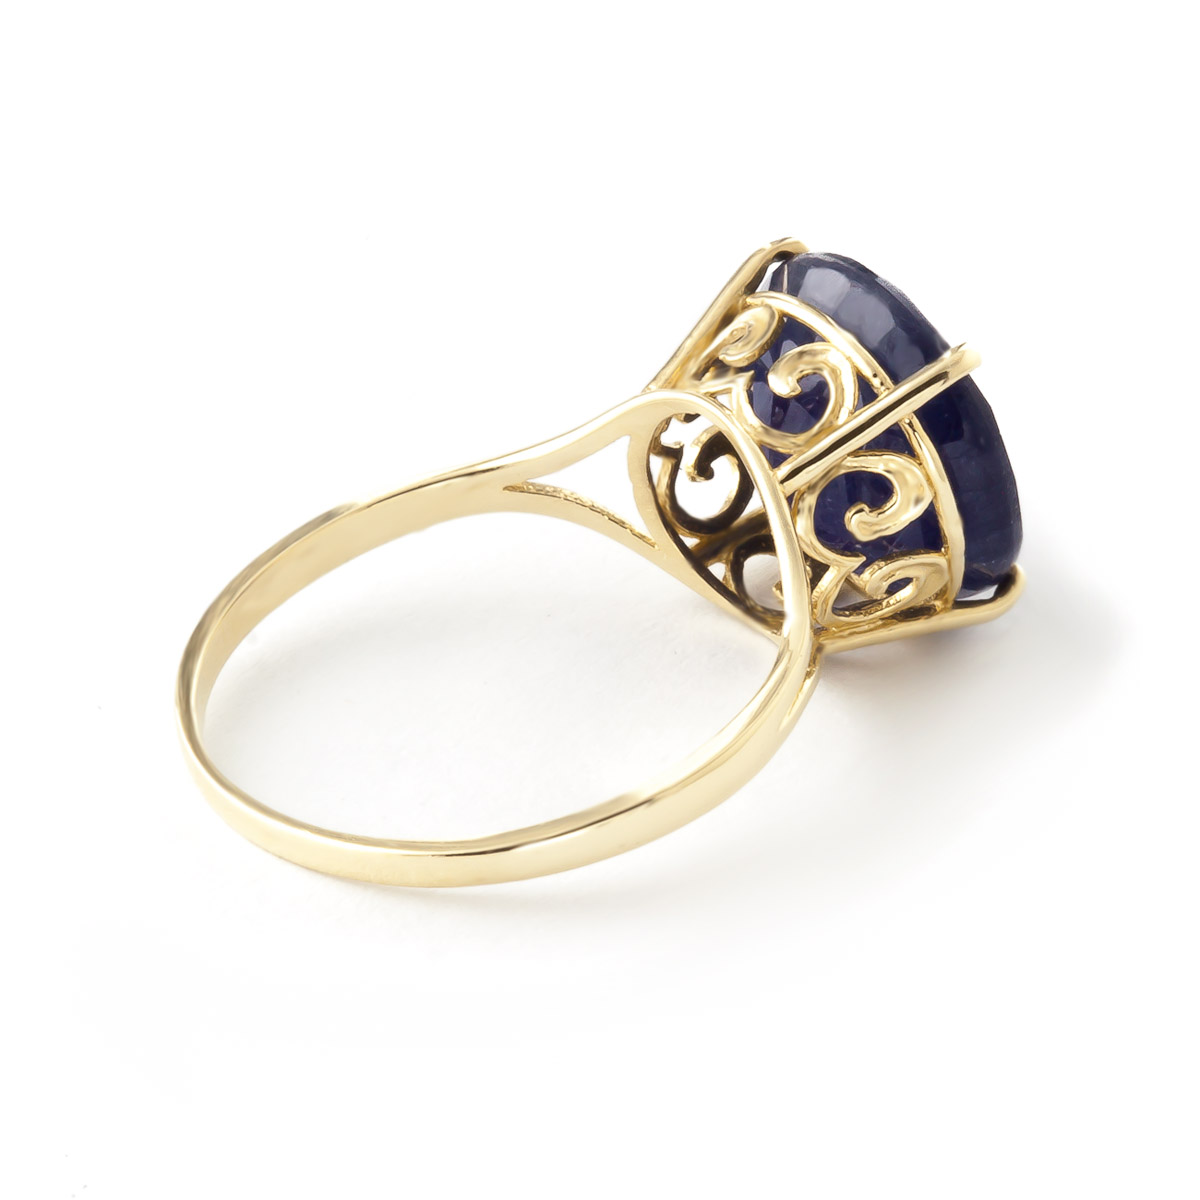 Round Cut Sapphire Ring 9.5 ct in 9ct Gold